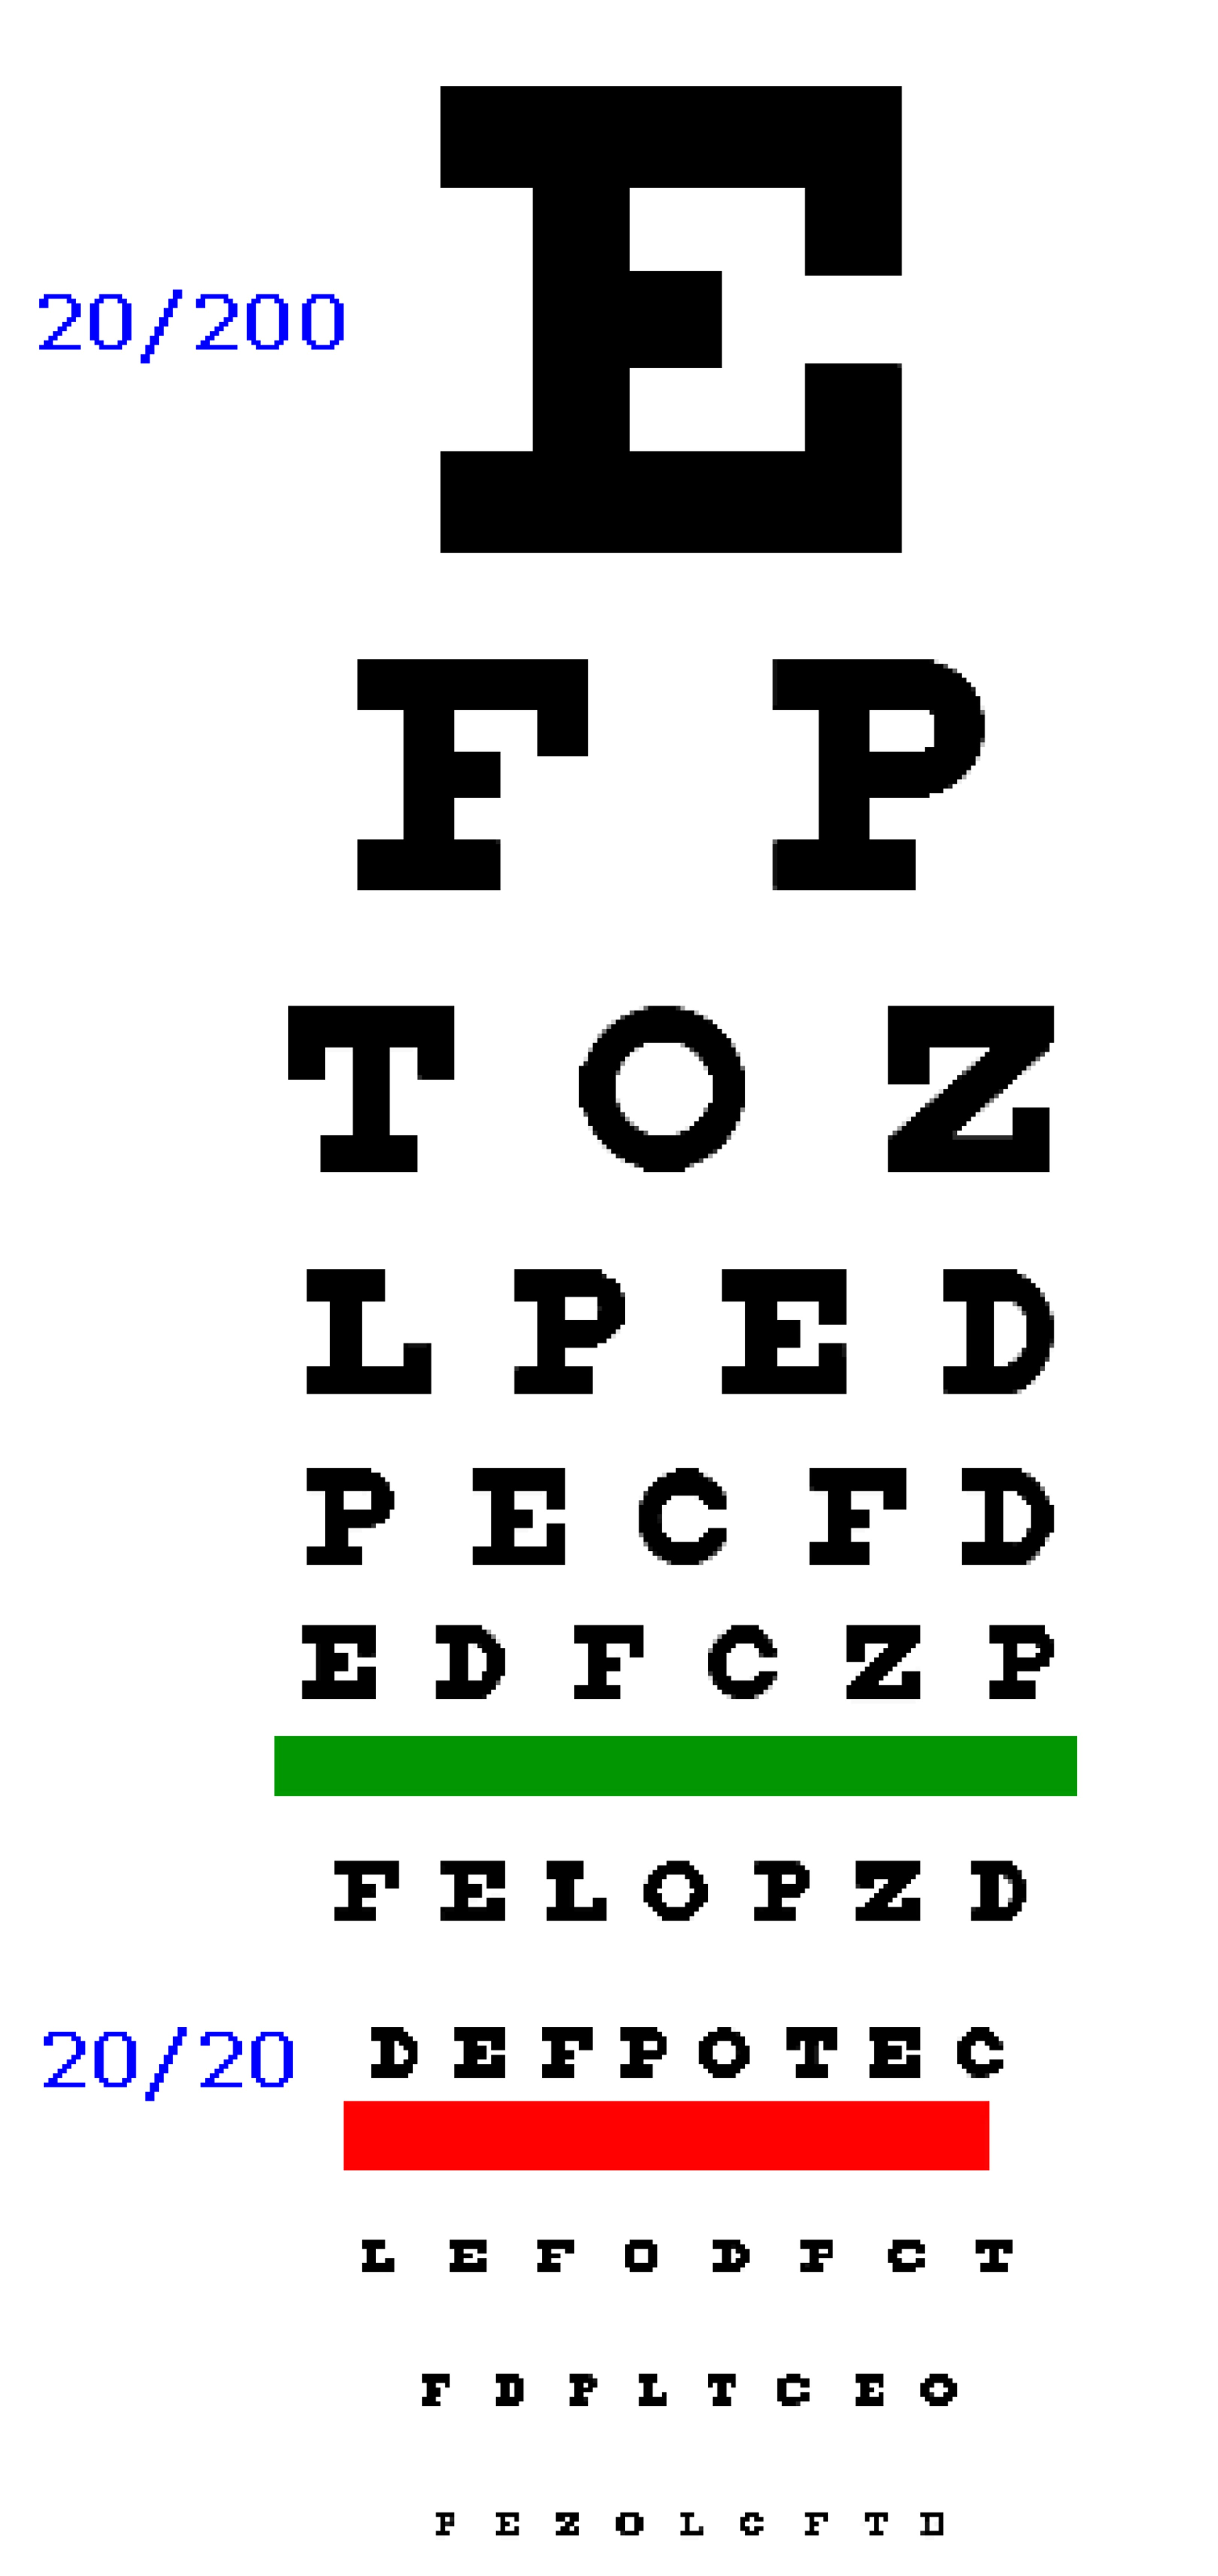 This is an image of Trust Printable Eye Test Charts